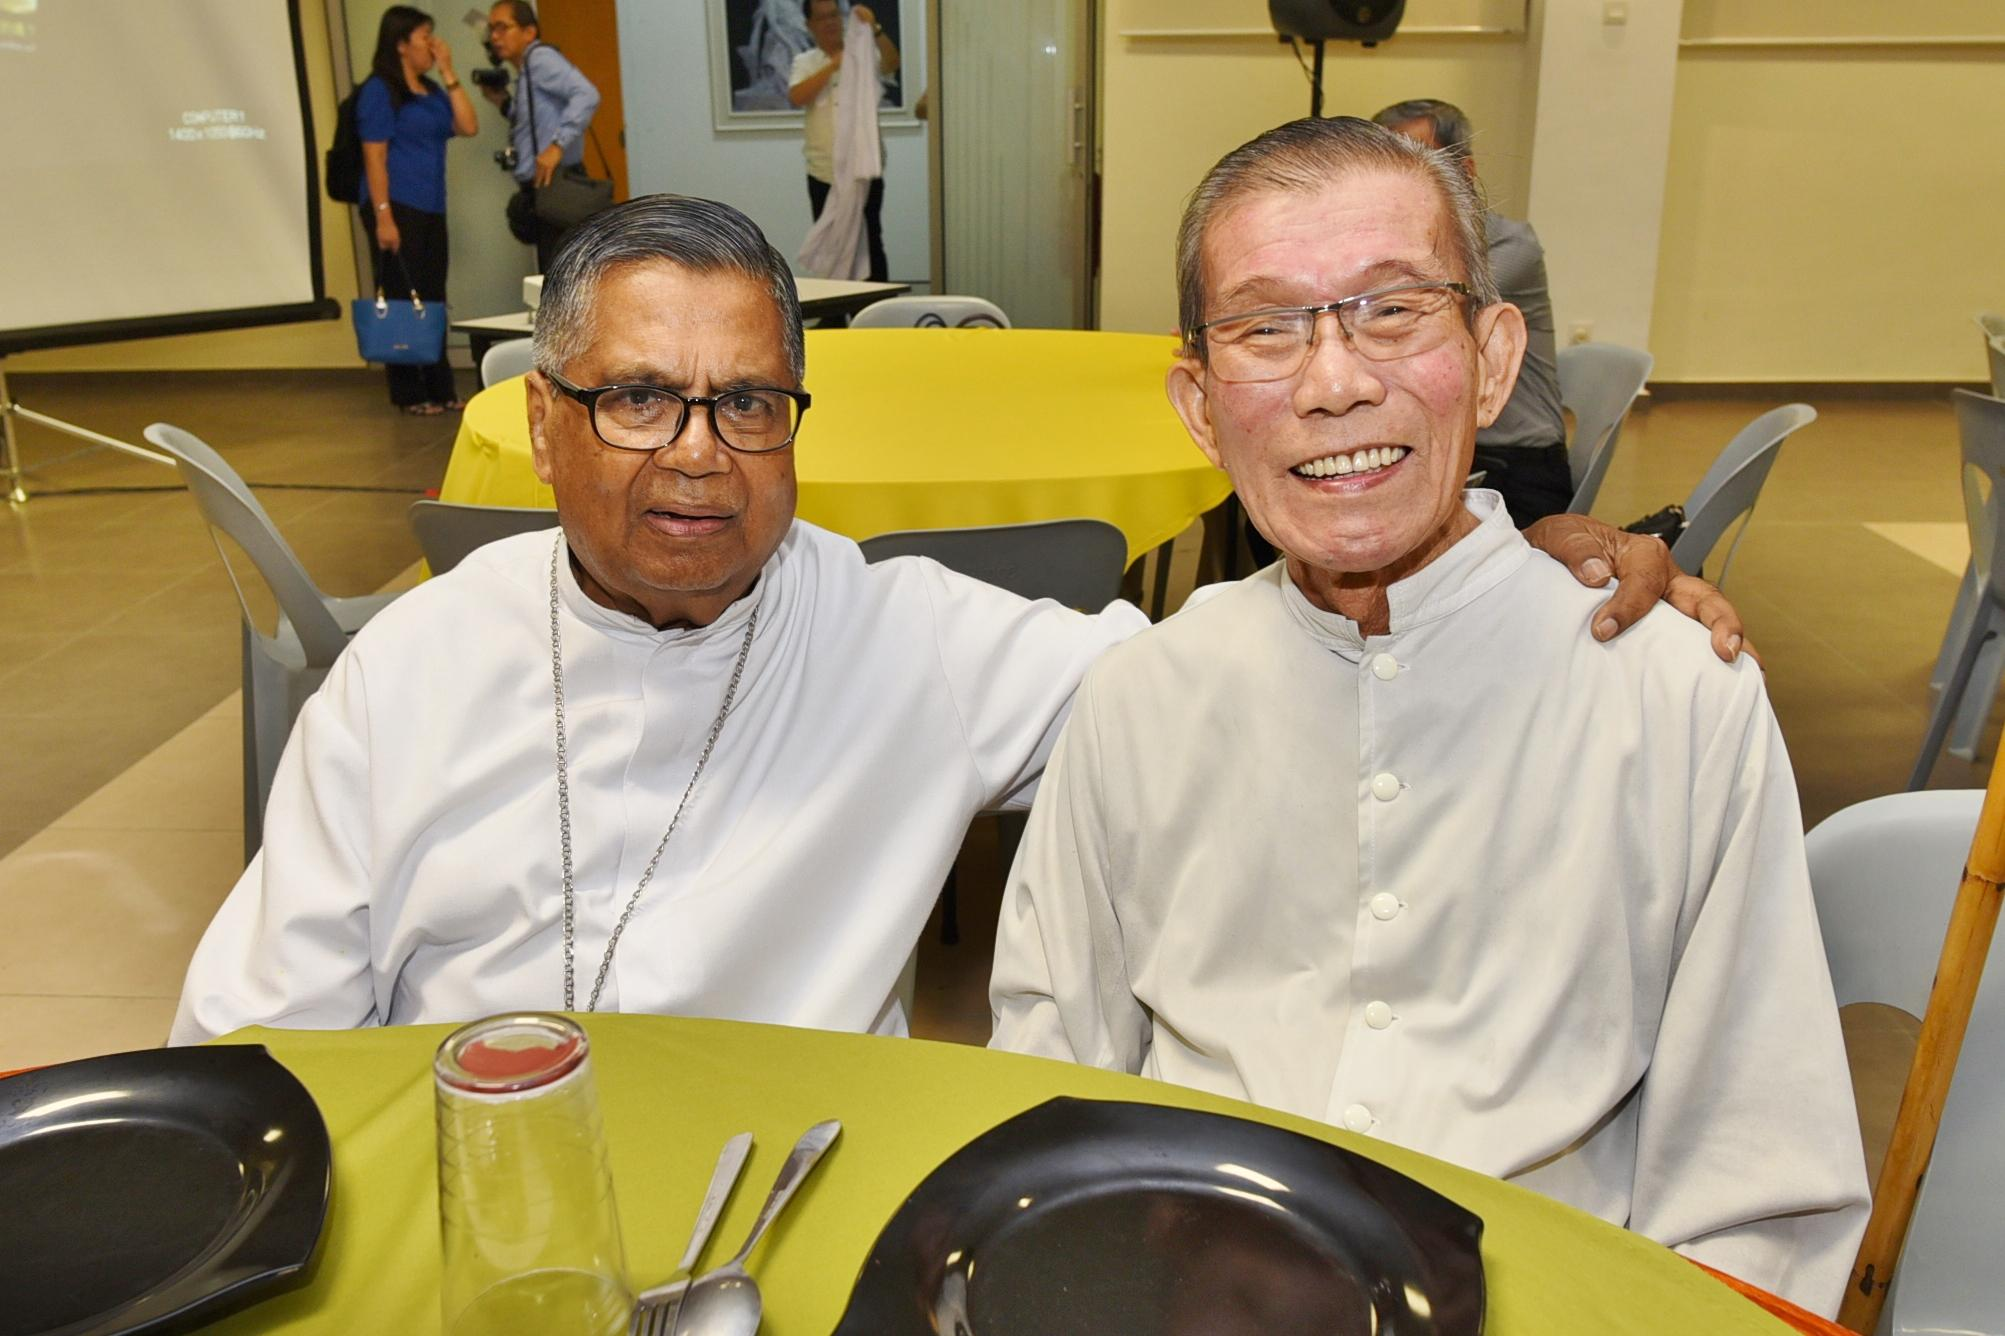 The Two Great Friend~ On 4th Jan 2017, His Eminence Anthony Soter Cardinal Fernandez with Fr Francis Ng, CDD (RIP 5th Aug 2018) at the celebration of 90th Anniversary of CDD ( Congregation of The Disciples of The Lord ) at St Ignatius Church, Petaling Jaya. Both of them was sitting together, and having good time together,  now they are joining together in the eternal home.  Rest in Peace.